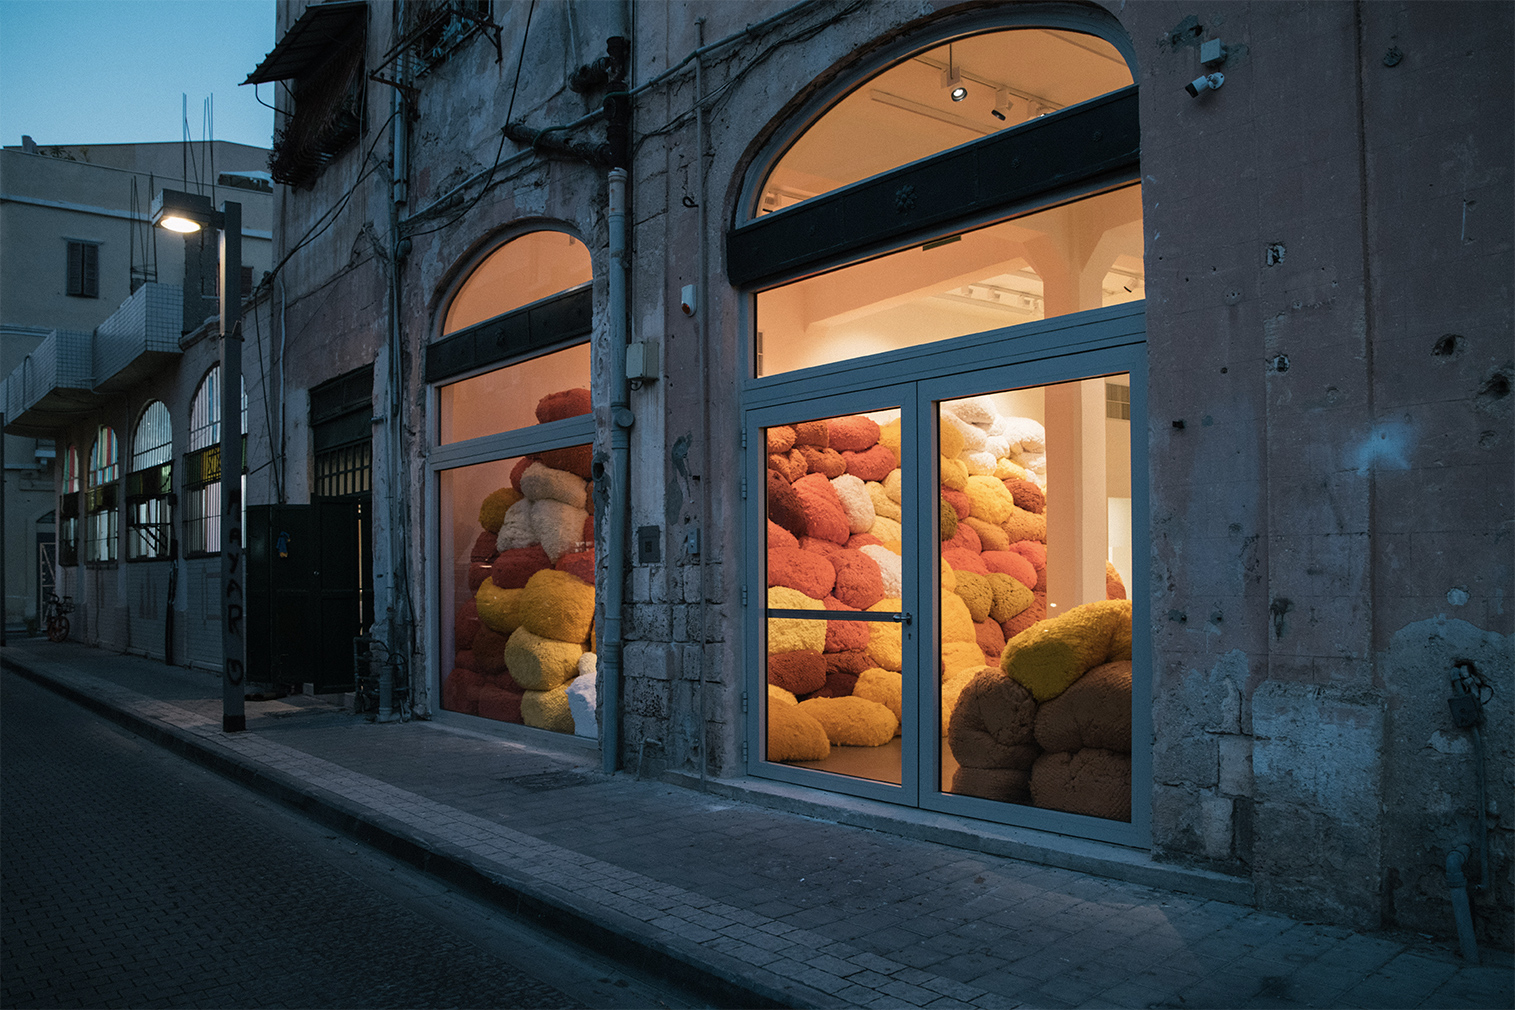 Sheila Hicks installs kaleidoscopic cotton sculptures inside Jaffa's Magasin III gallery